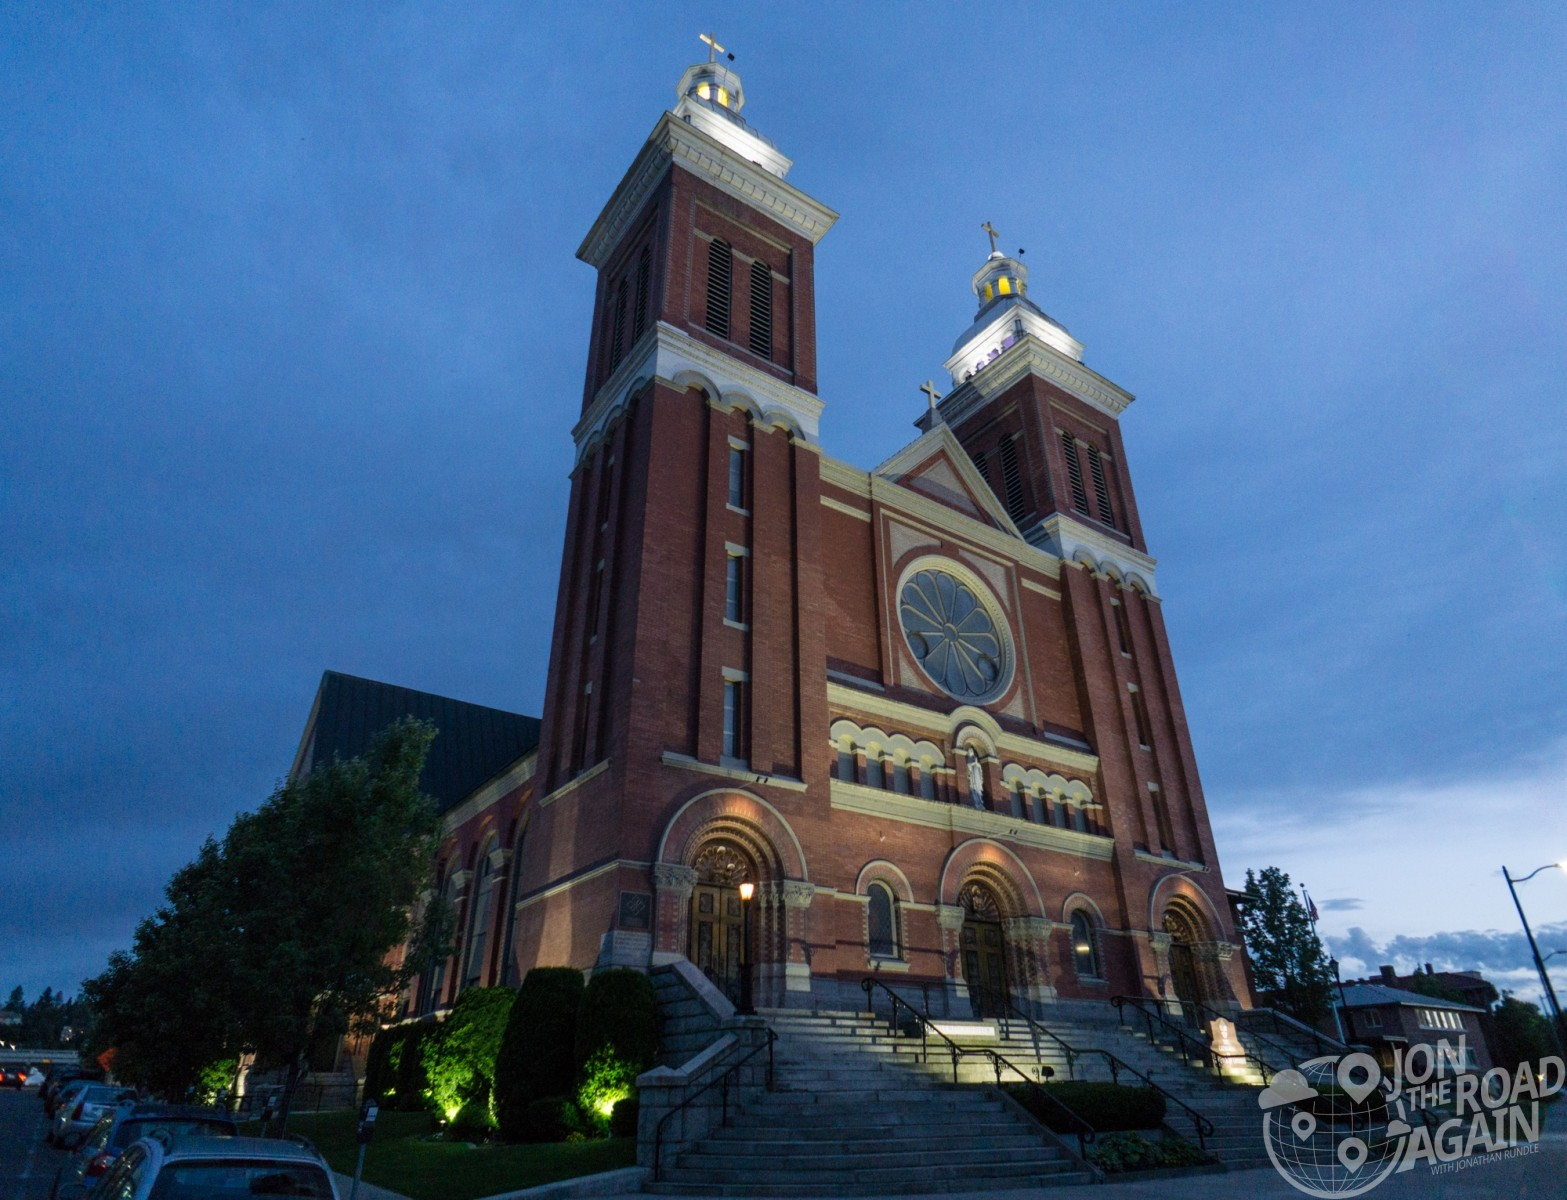 Cathedral of Our Lady of Lourdes, Spokane, WA